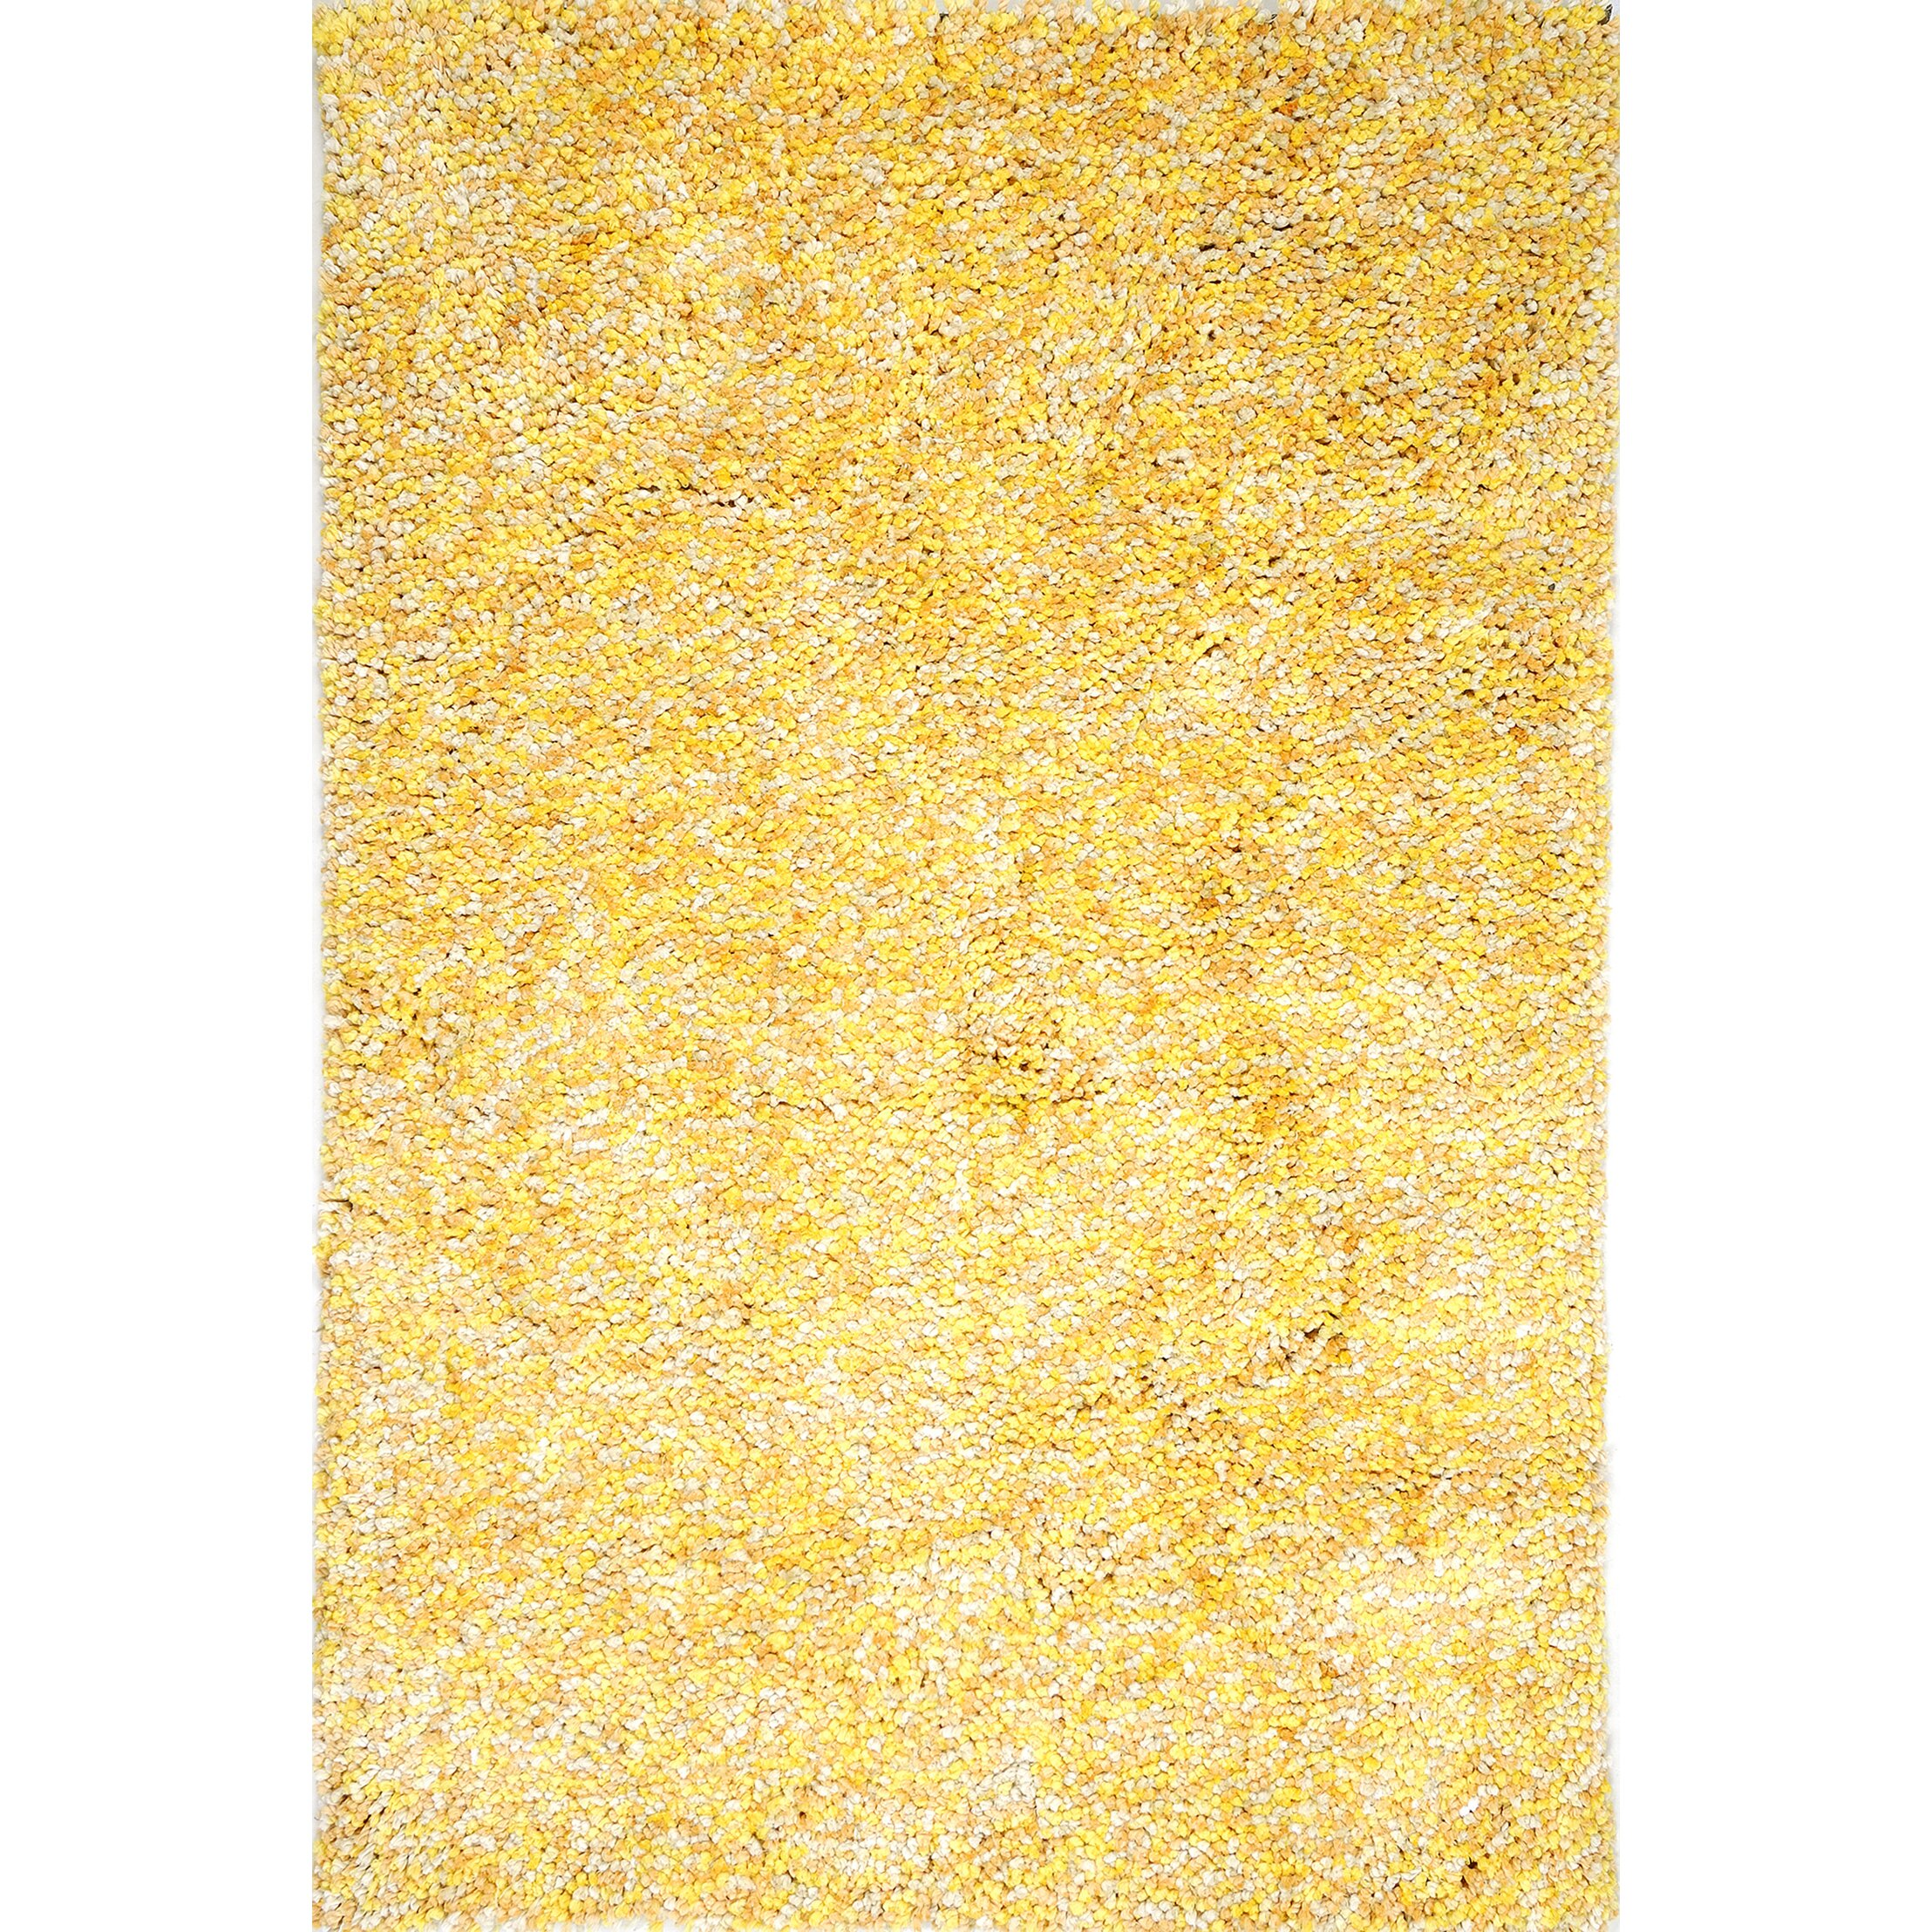 Amer Rugs Cozy Yellow Area Rug Amp Reviews Wayfair